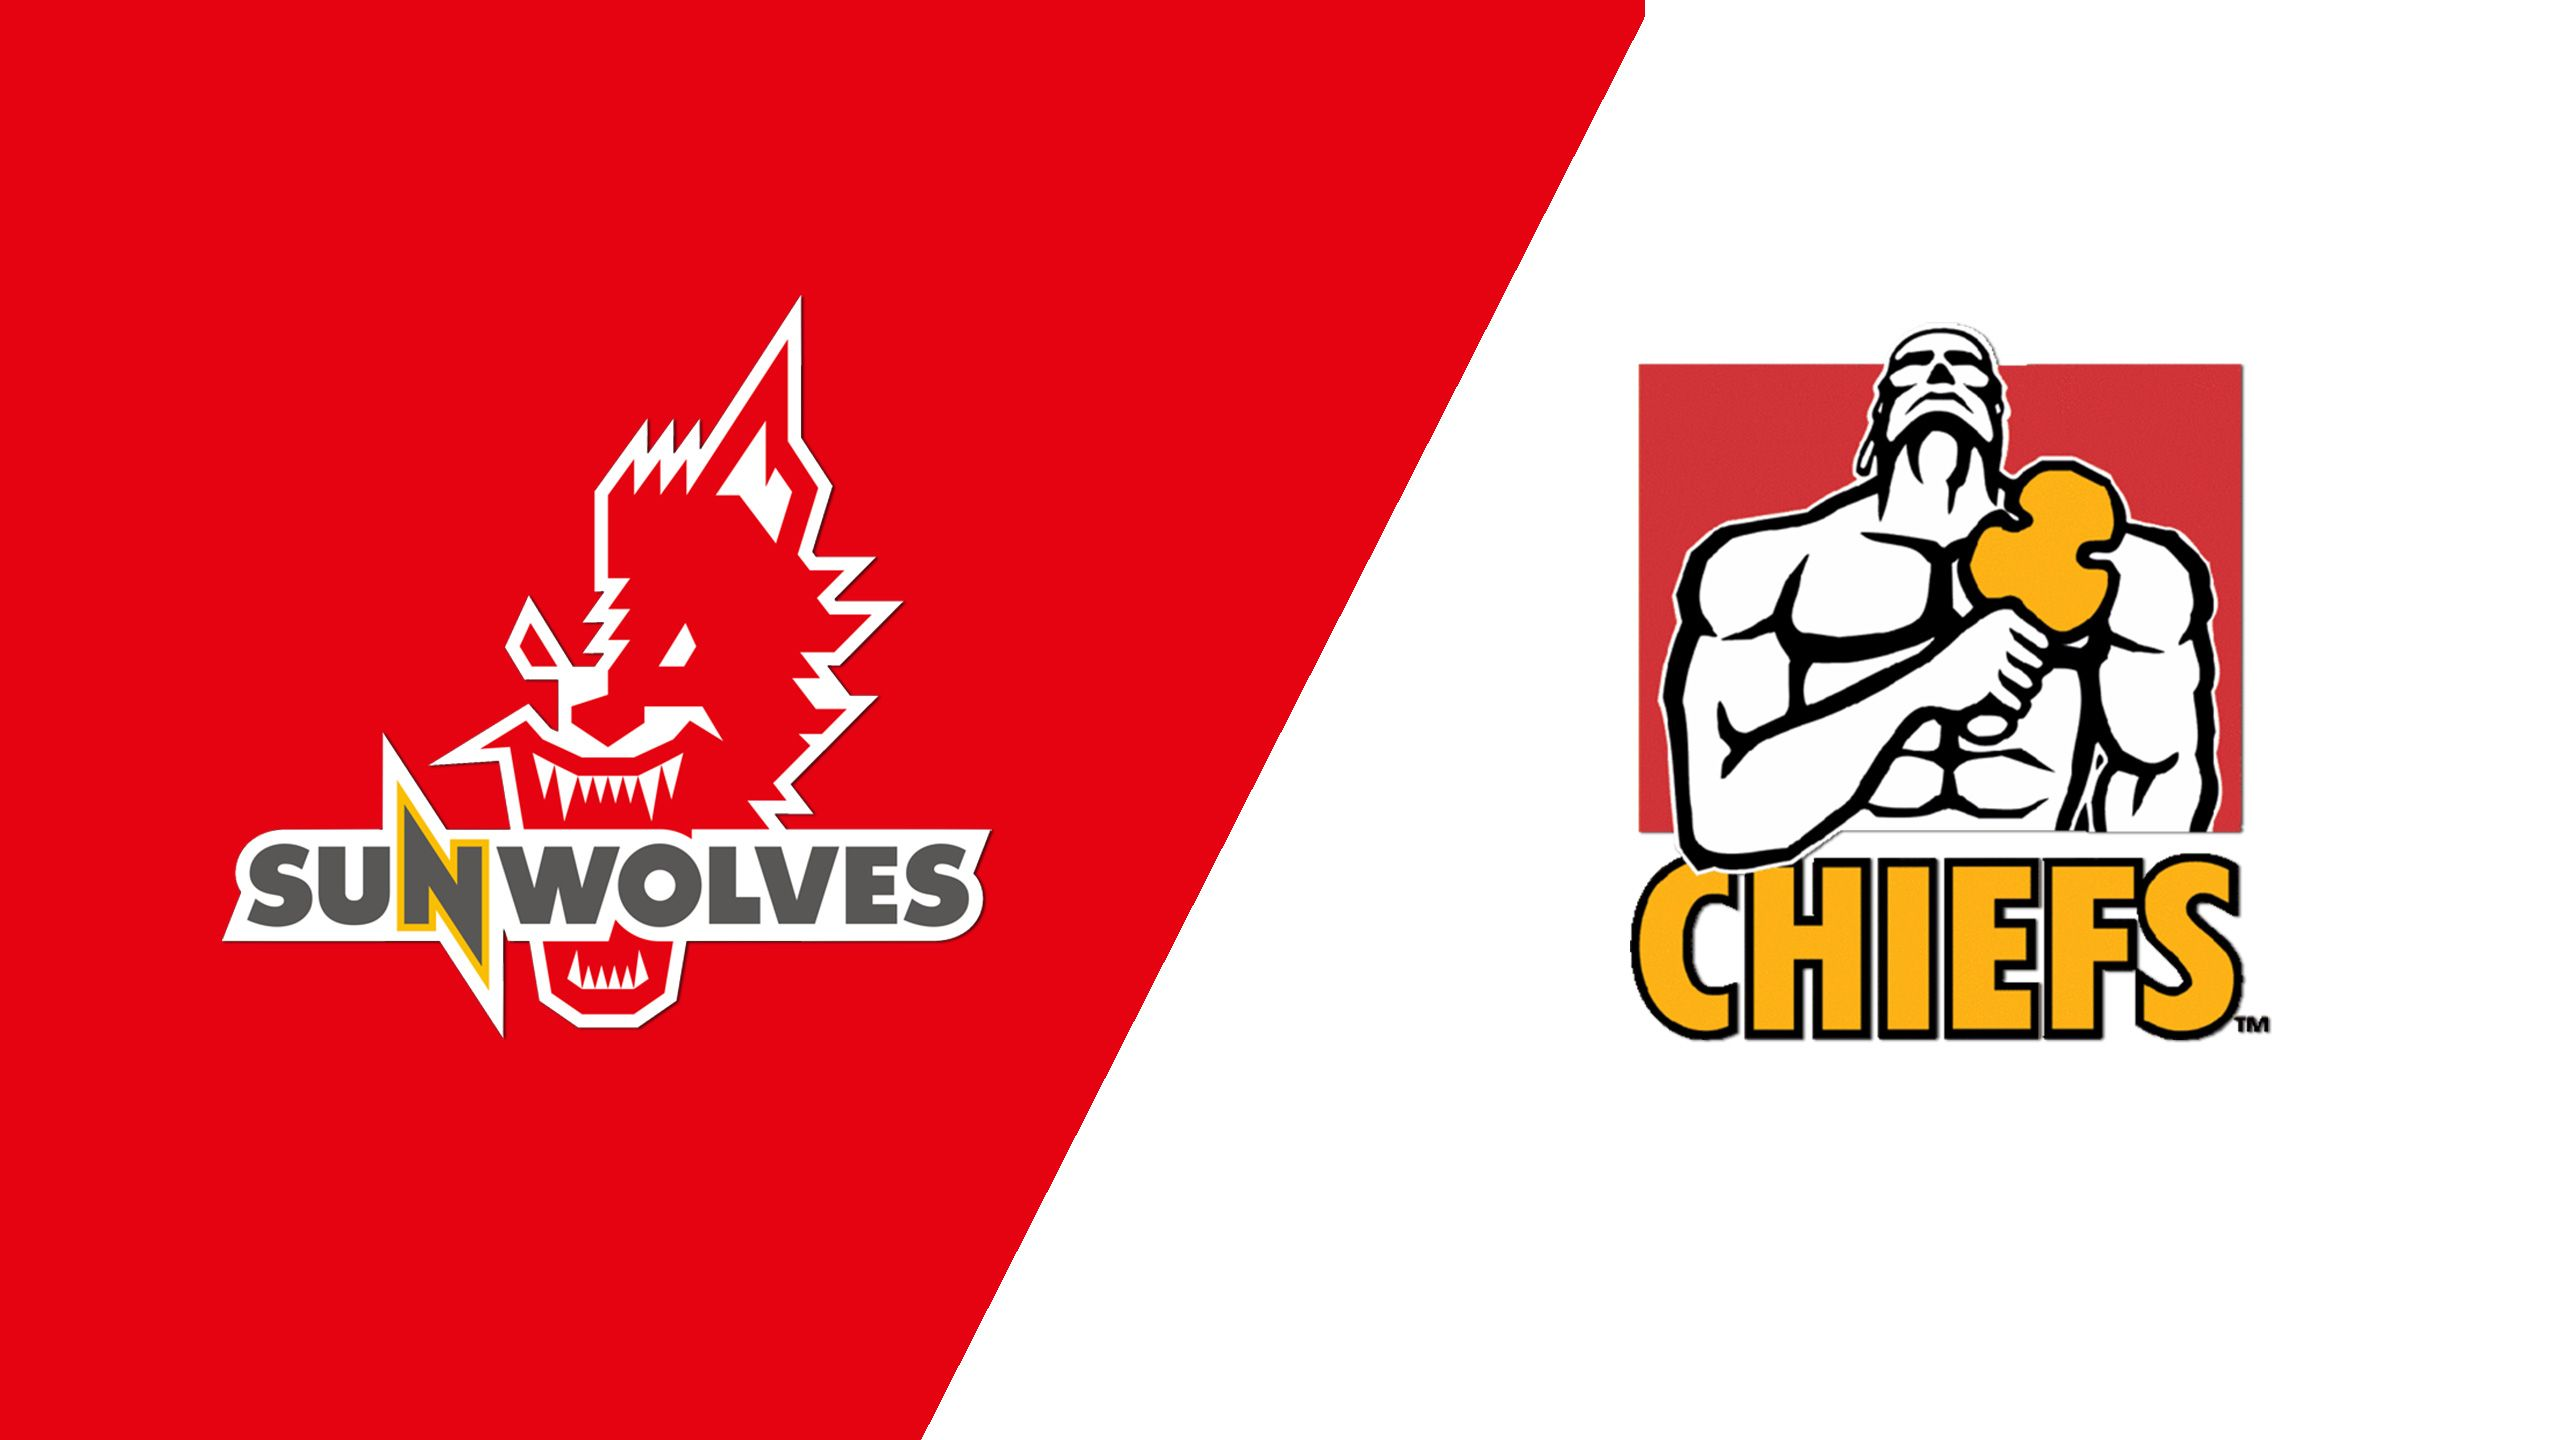 Sunwolves vs. Chiefs (Super Rugby)